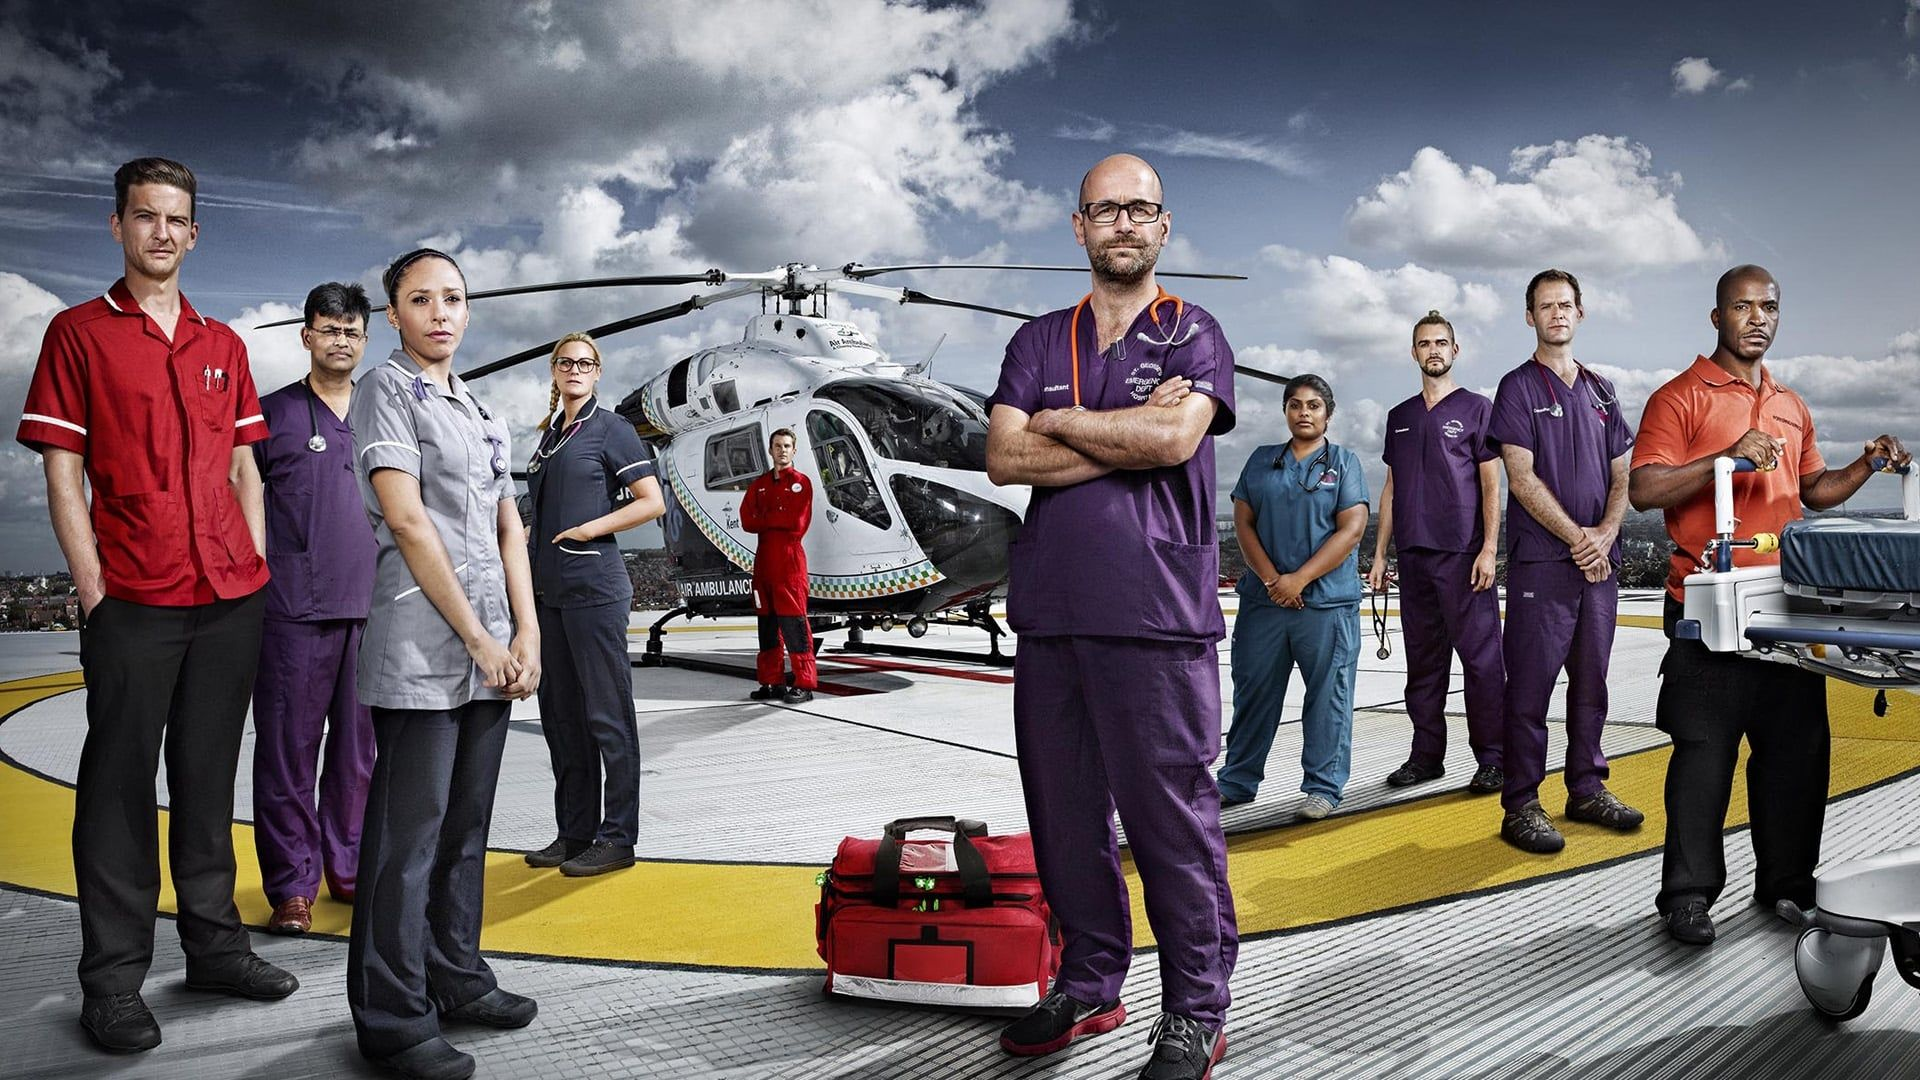 24 Hours in A&E - Where to Watch Every Episode Streaming Online